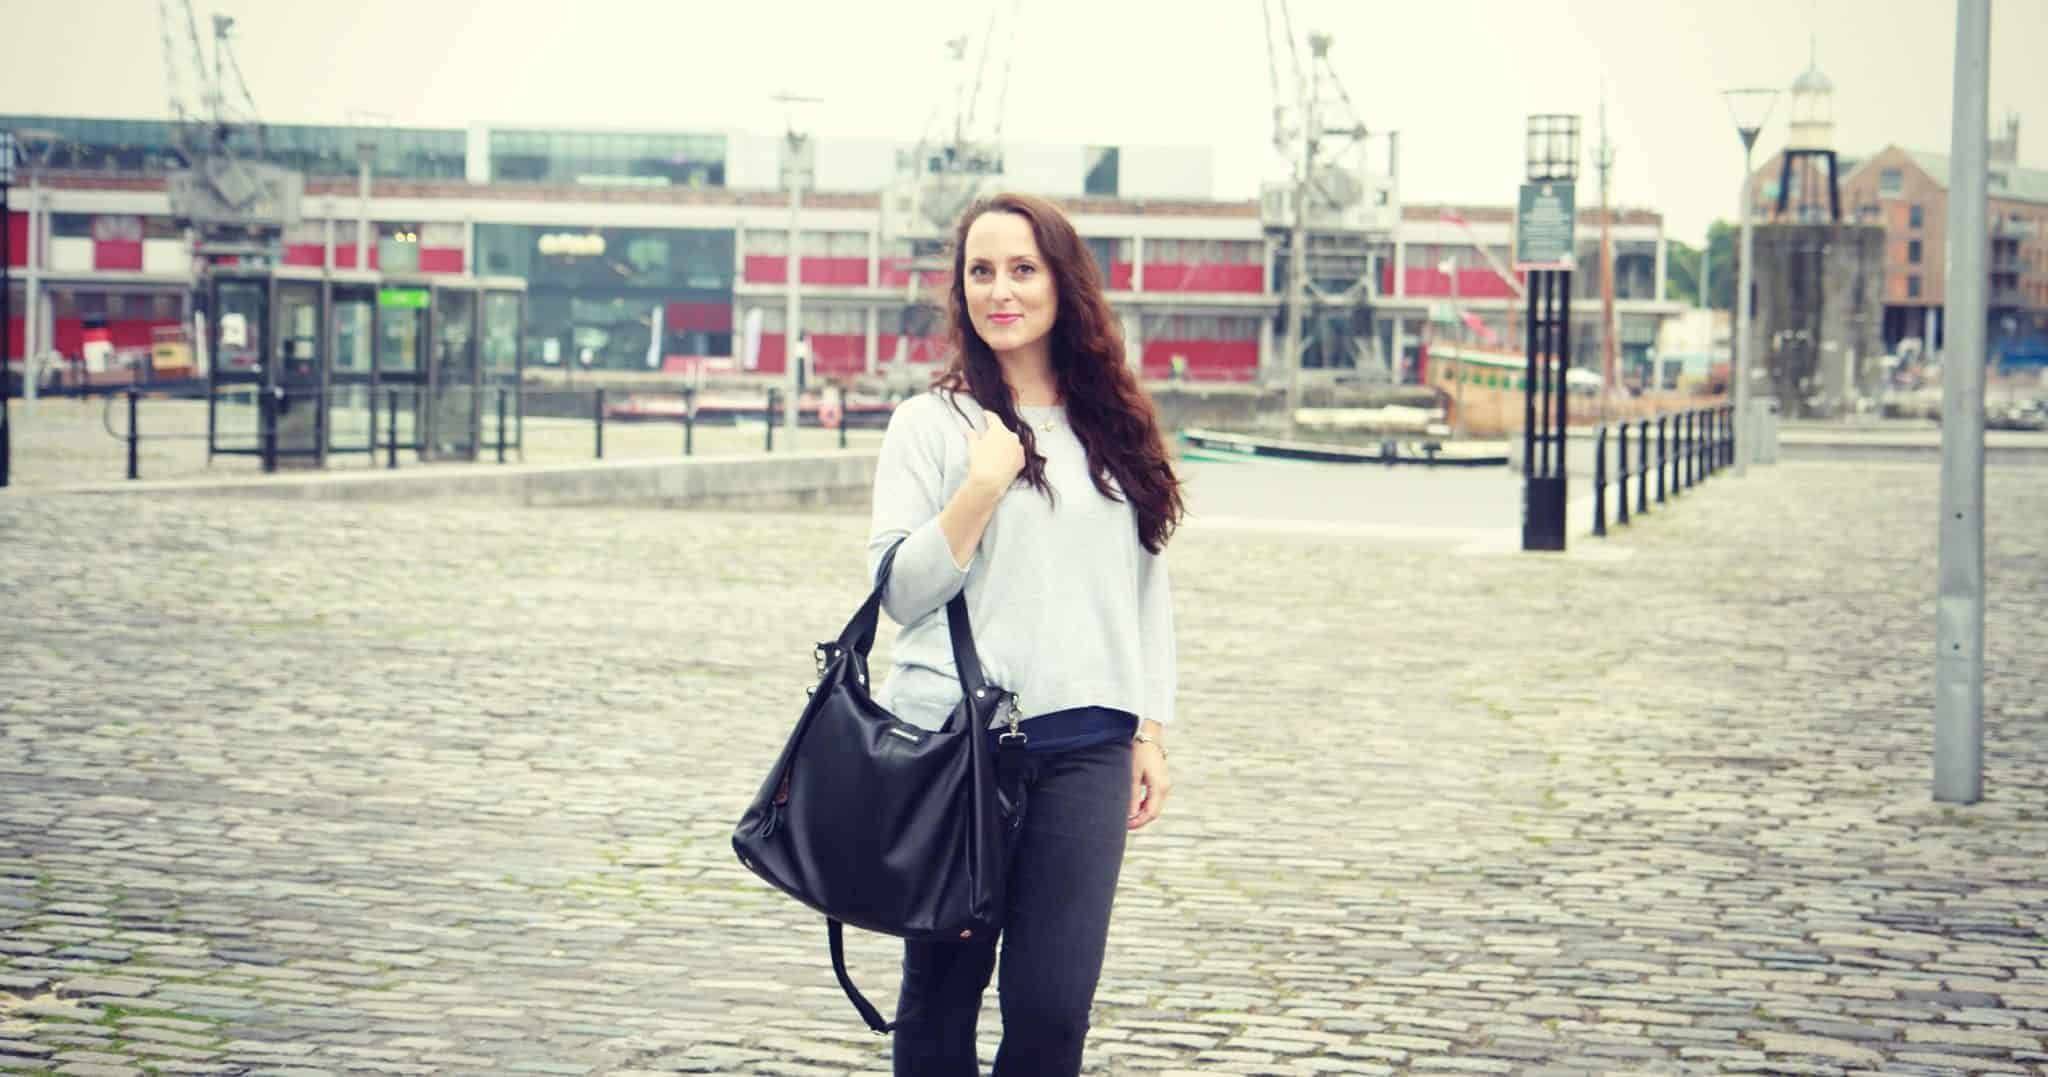 Wearing jumper from Whistles, Topshop jeans and Storksak changing bag